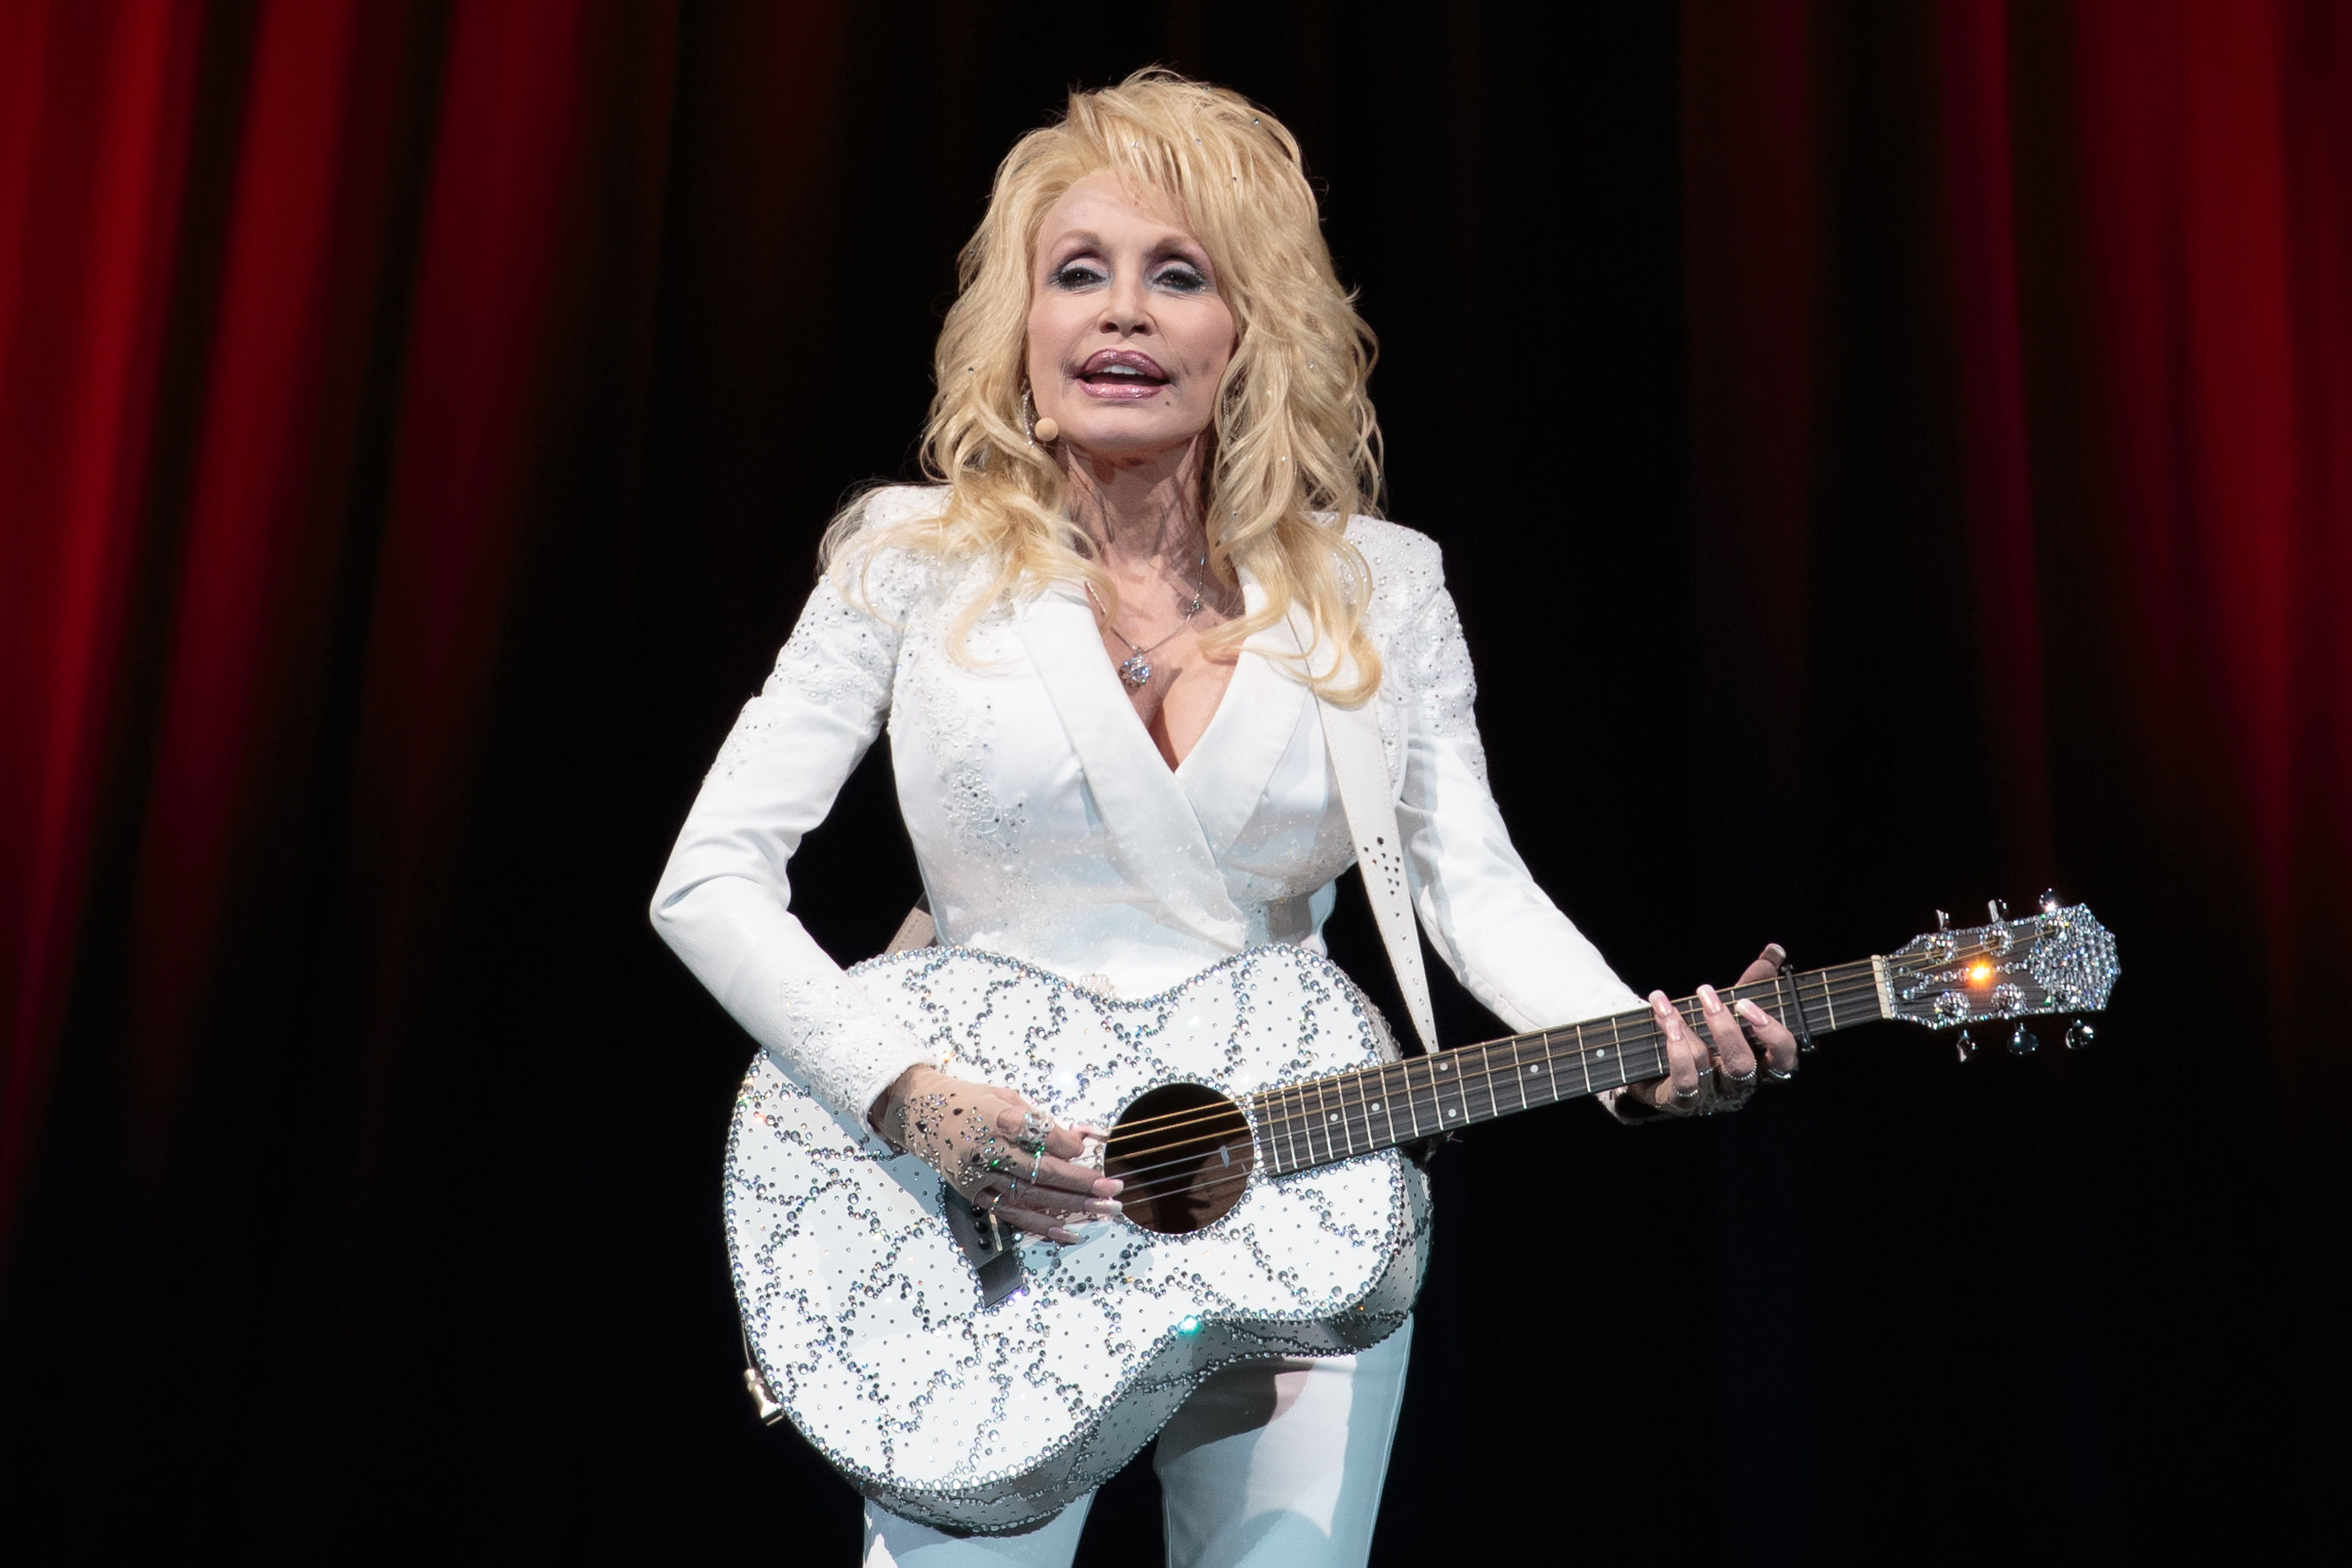 Dolly Parton's Telethon Raised 'Millions' for Tennessee Wildfire Victims